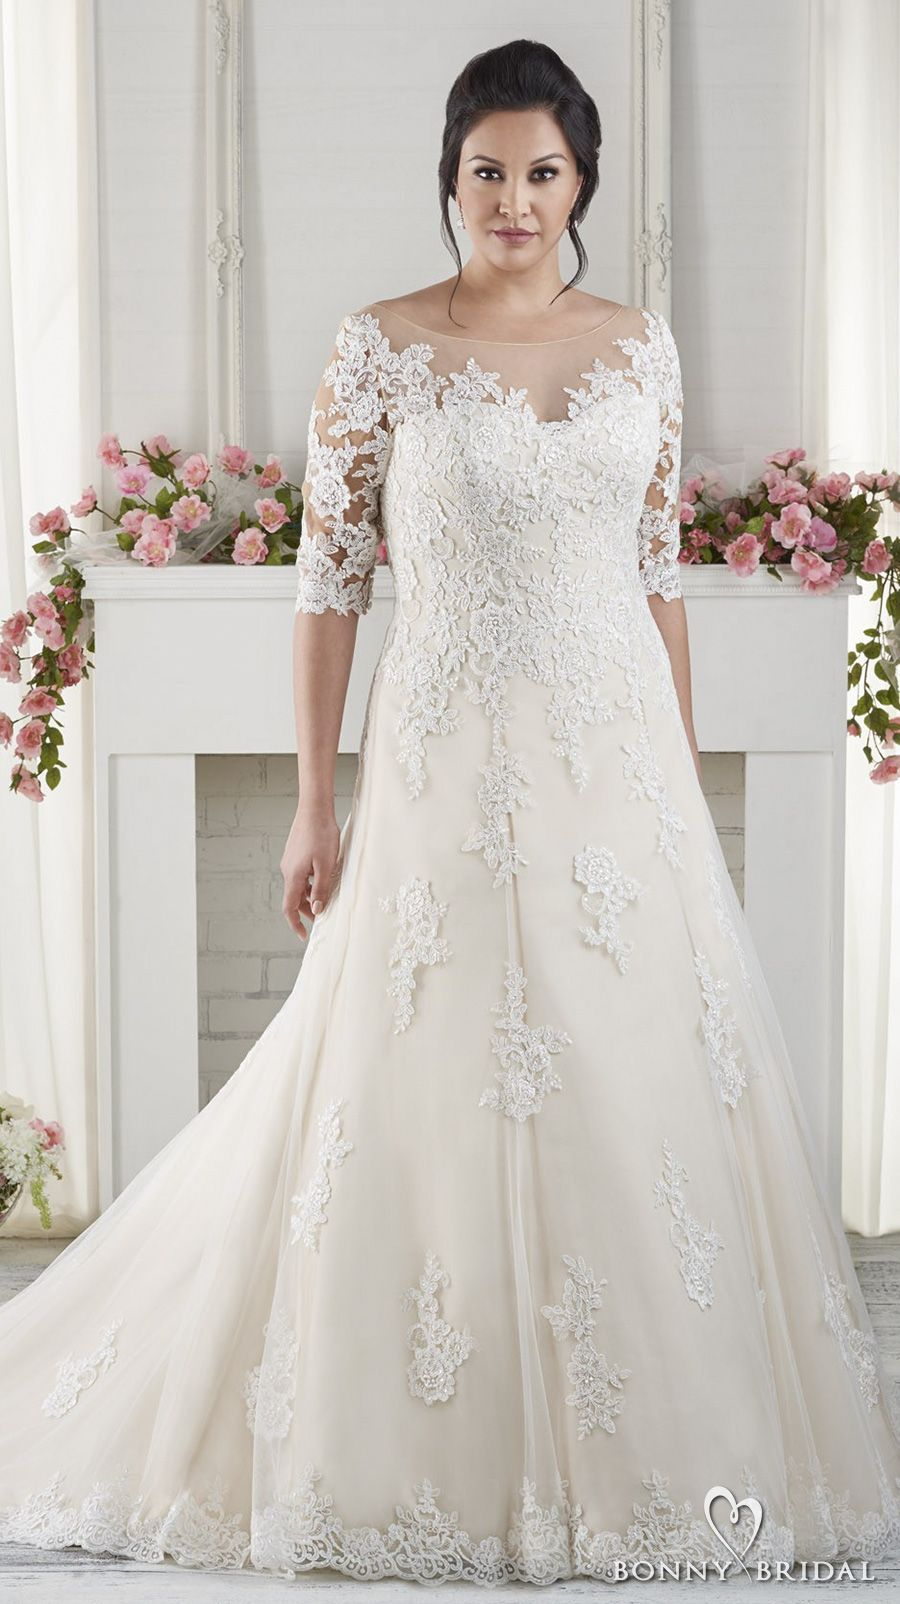 Bonny Bridal Wedding Dresses — Unforgettable Styles for Every